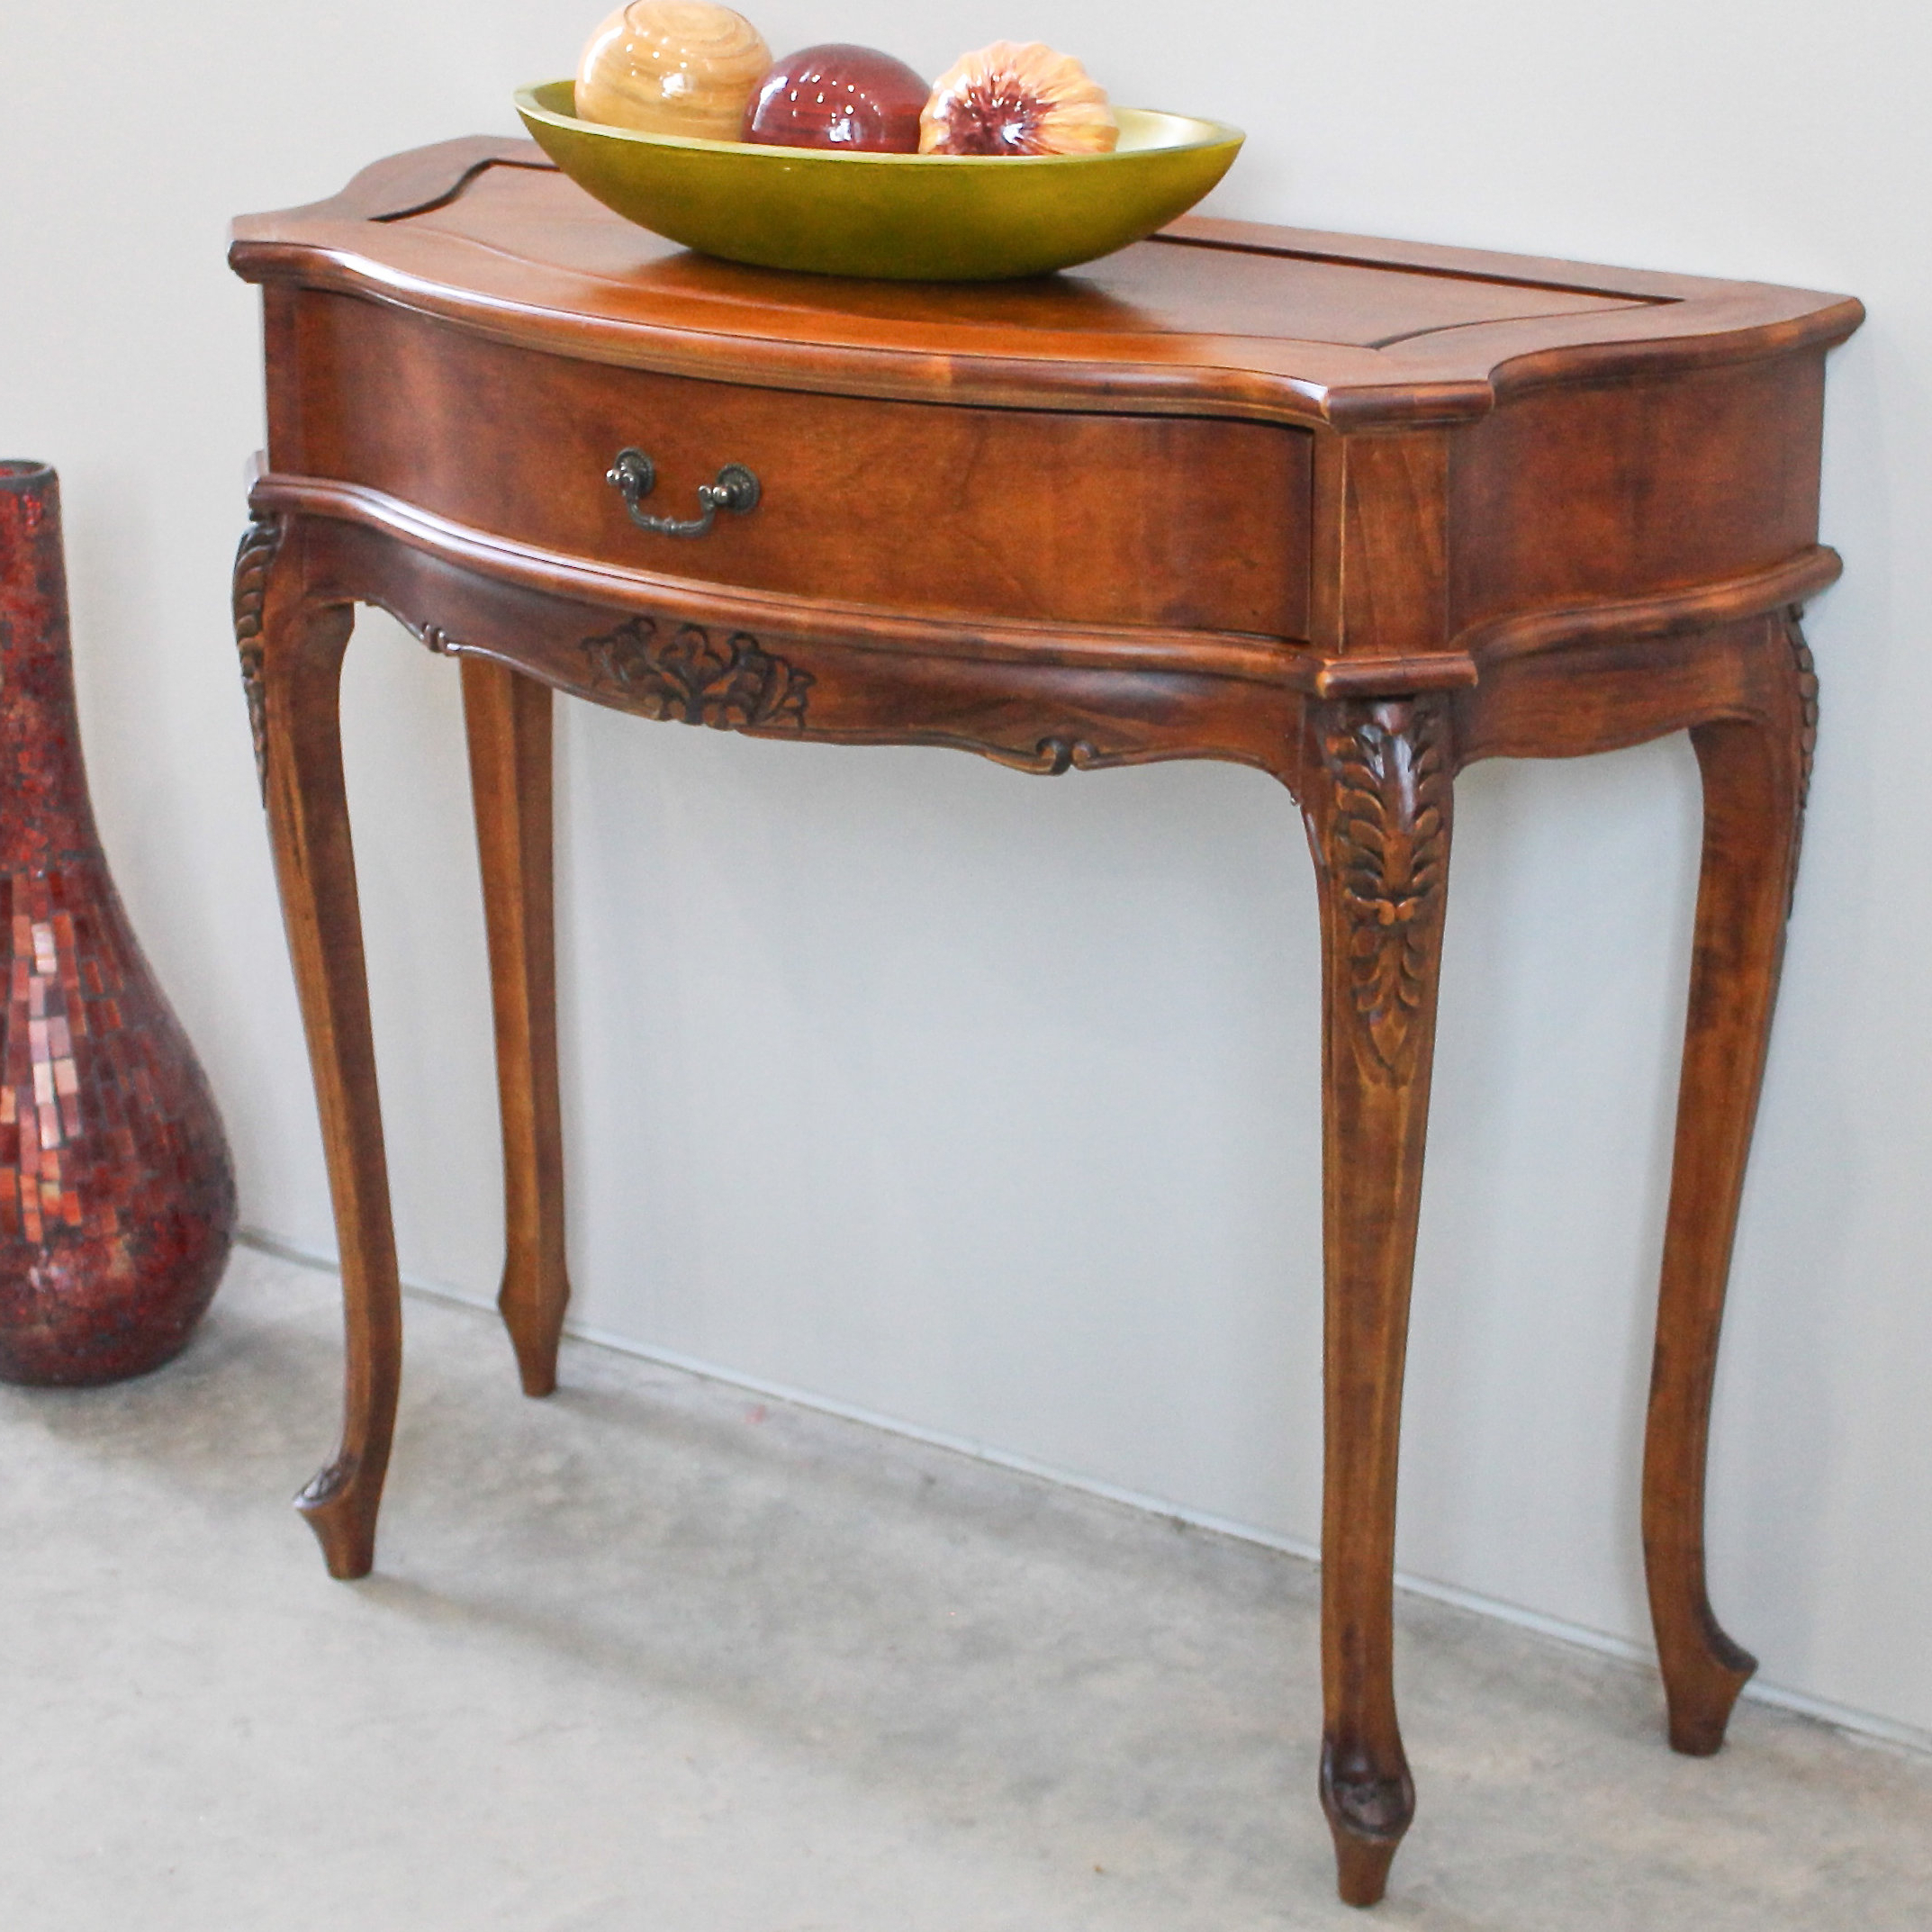 Carved Indian Furniture | Wayfair (View 18 of 20)